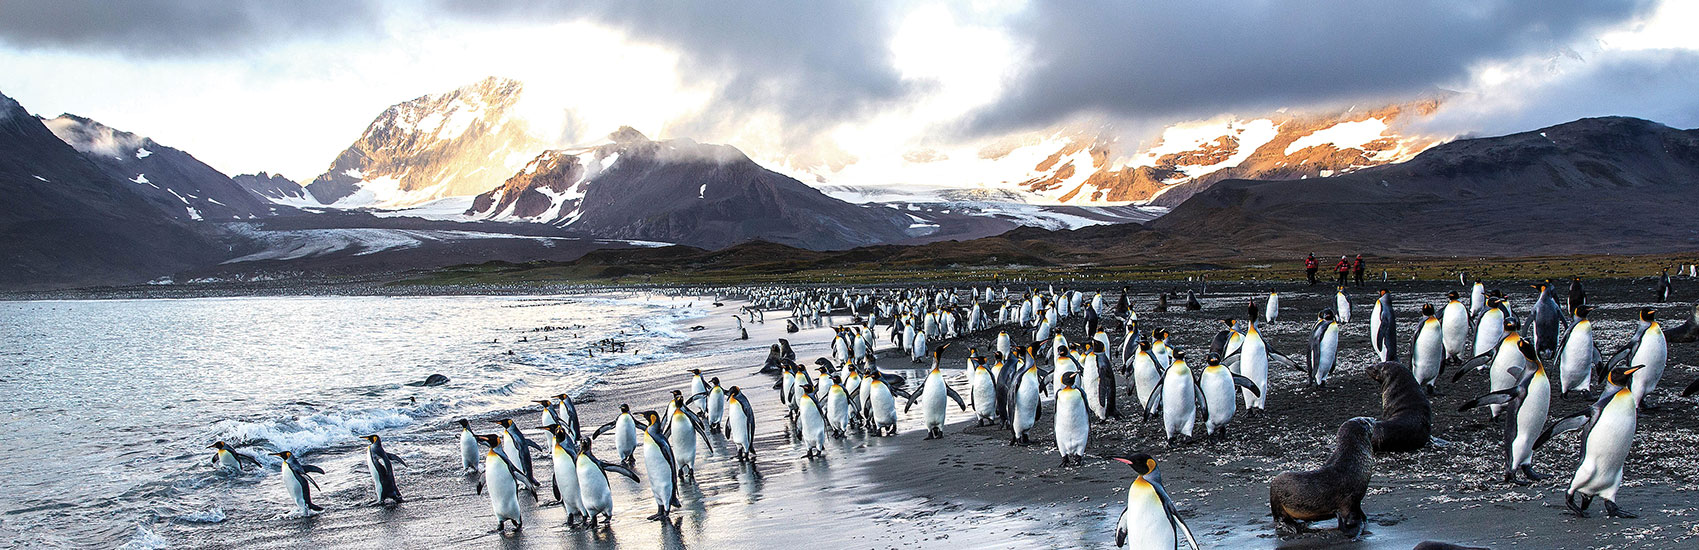 Air Credit Offer with Ponant to Antarctica 0